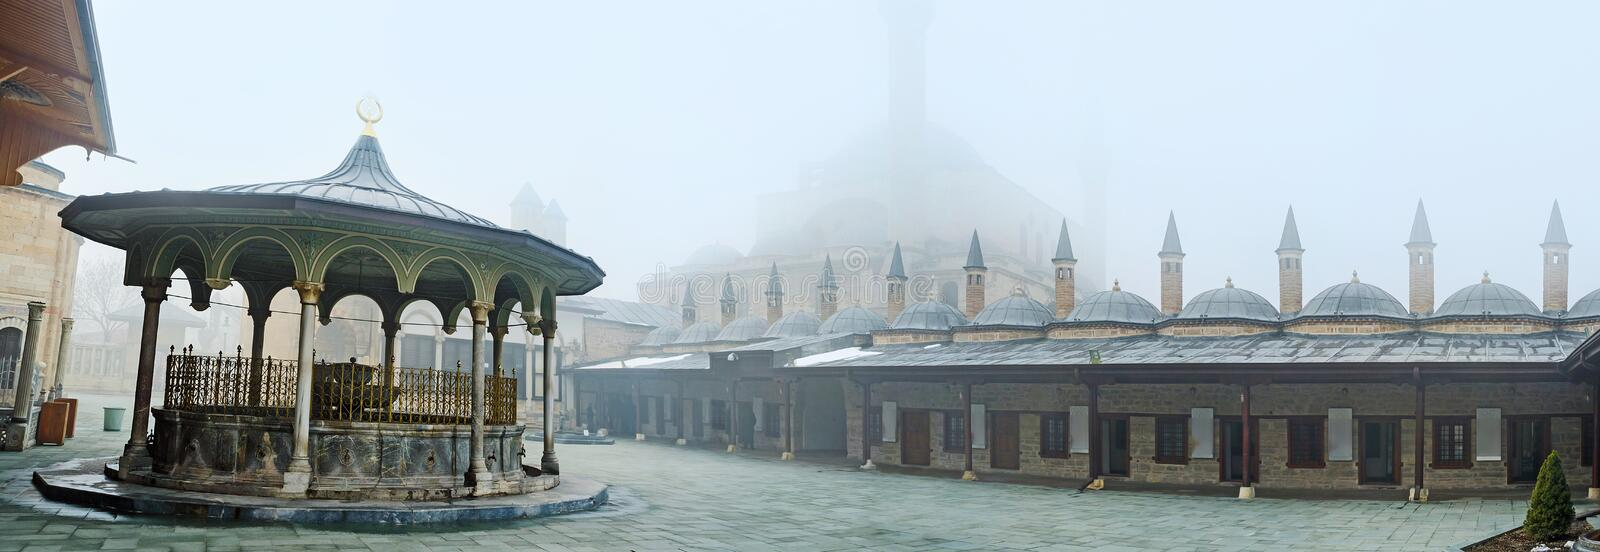 The Museum of Mevlevi order. KONYA, TURKEY - JANUARY 20, 2015: The courtyard of Mevlana Museum with the view on the living chambers of dervishs and the stock photo